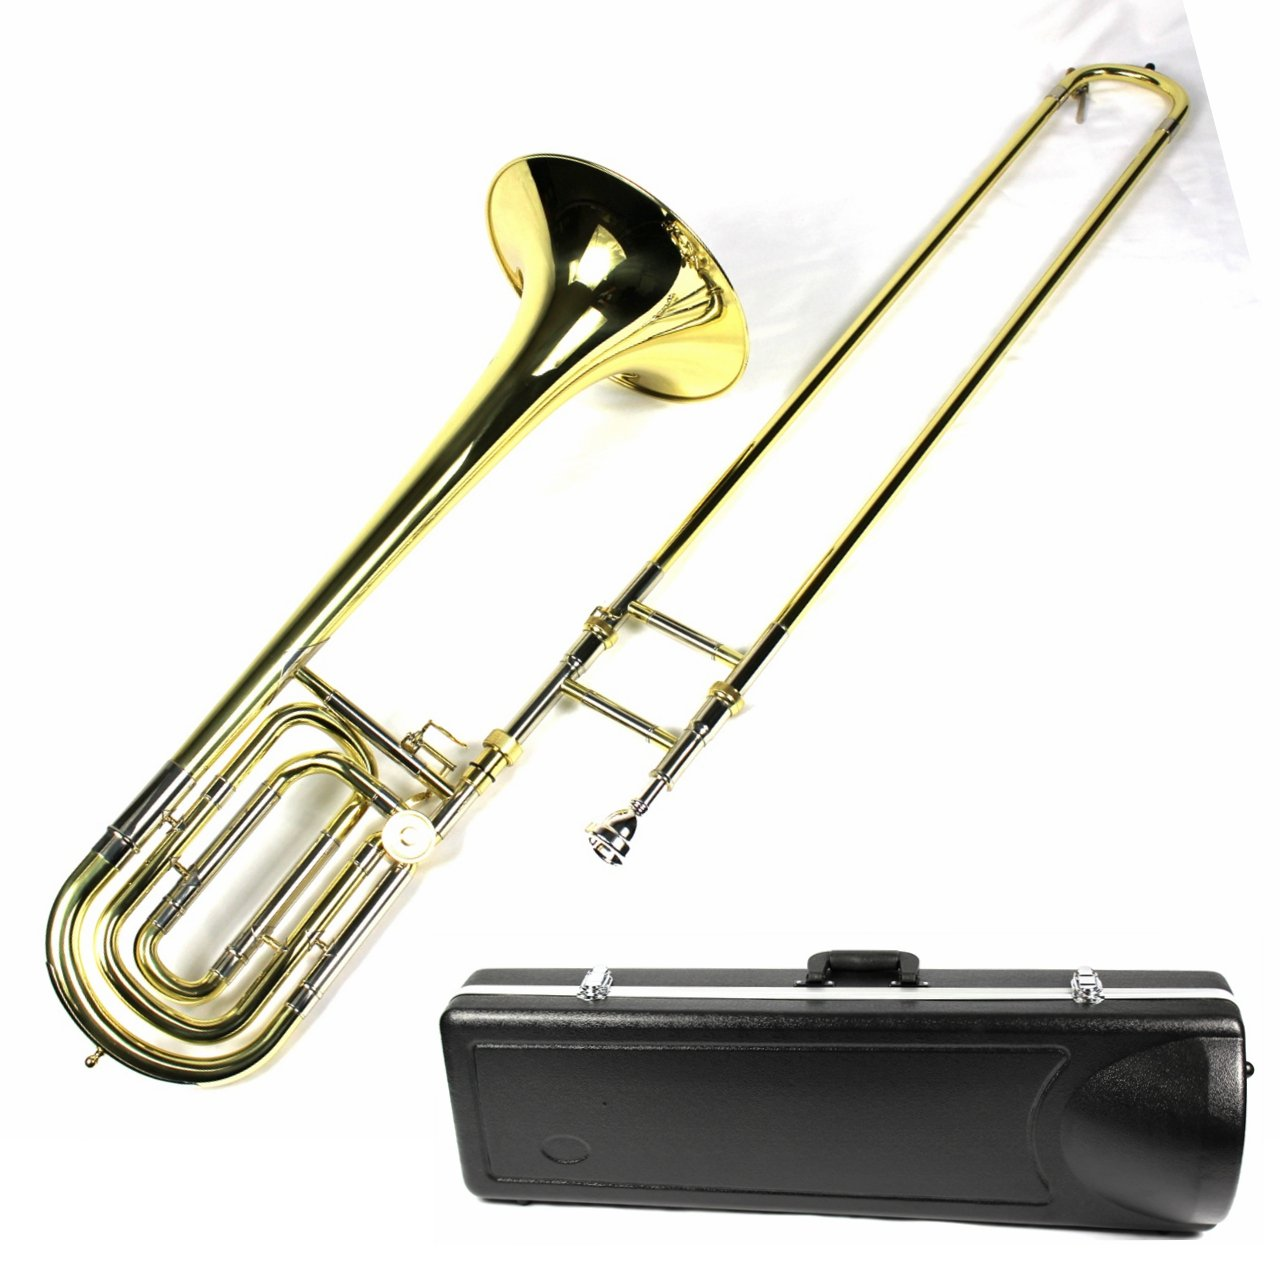 Brand New Bb/F Bass Trombone w/ Case and Mouthpiece- Gold Lacquer Finish